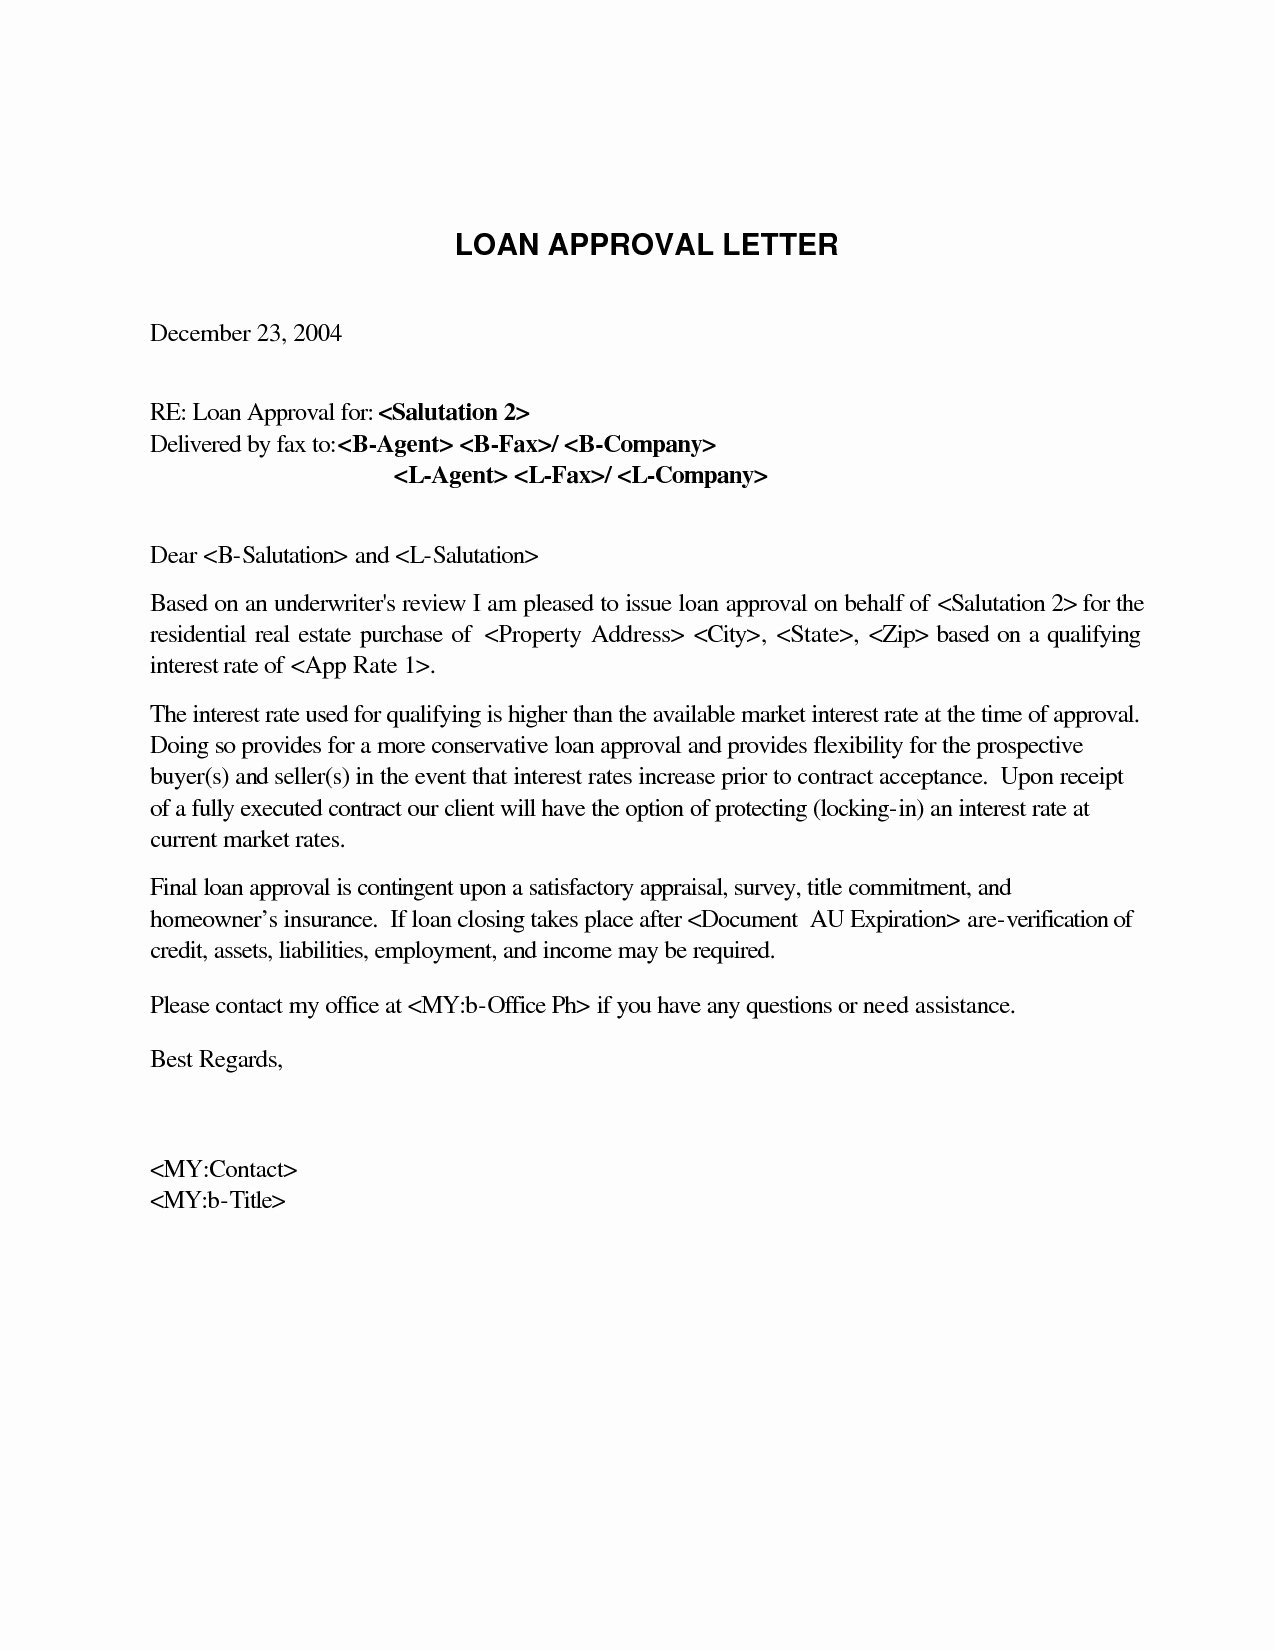 Mortgage Pre Approval Letter Template Awesome Mortgage Pre Qualification Letter Template Collection